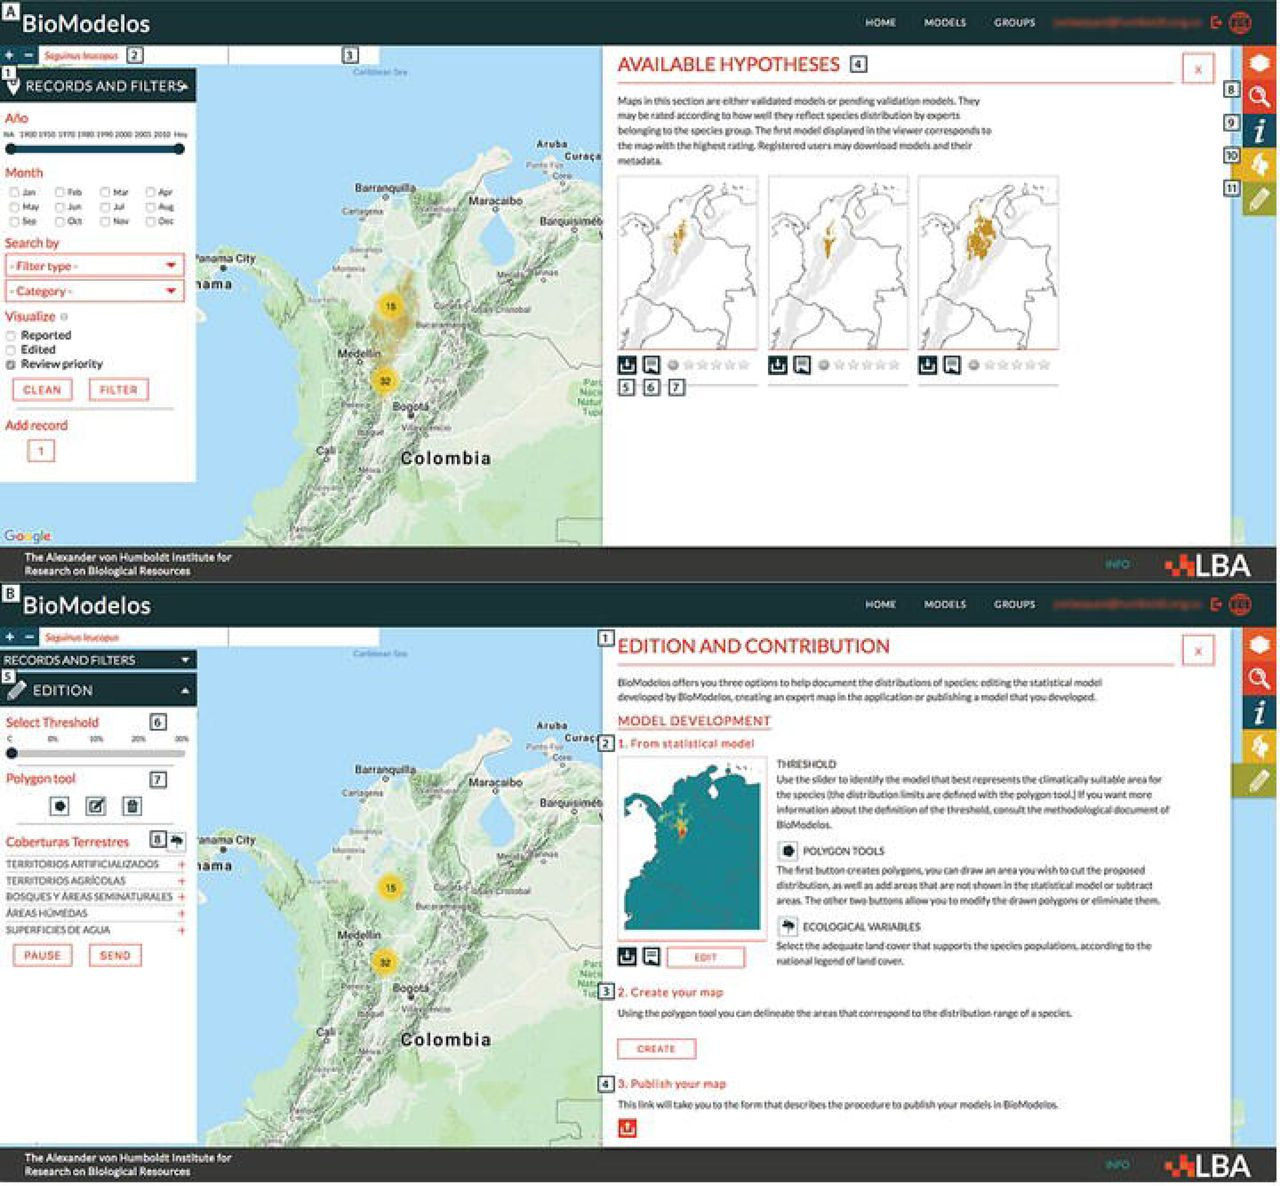 BioModelos: a collaborative online system to map species